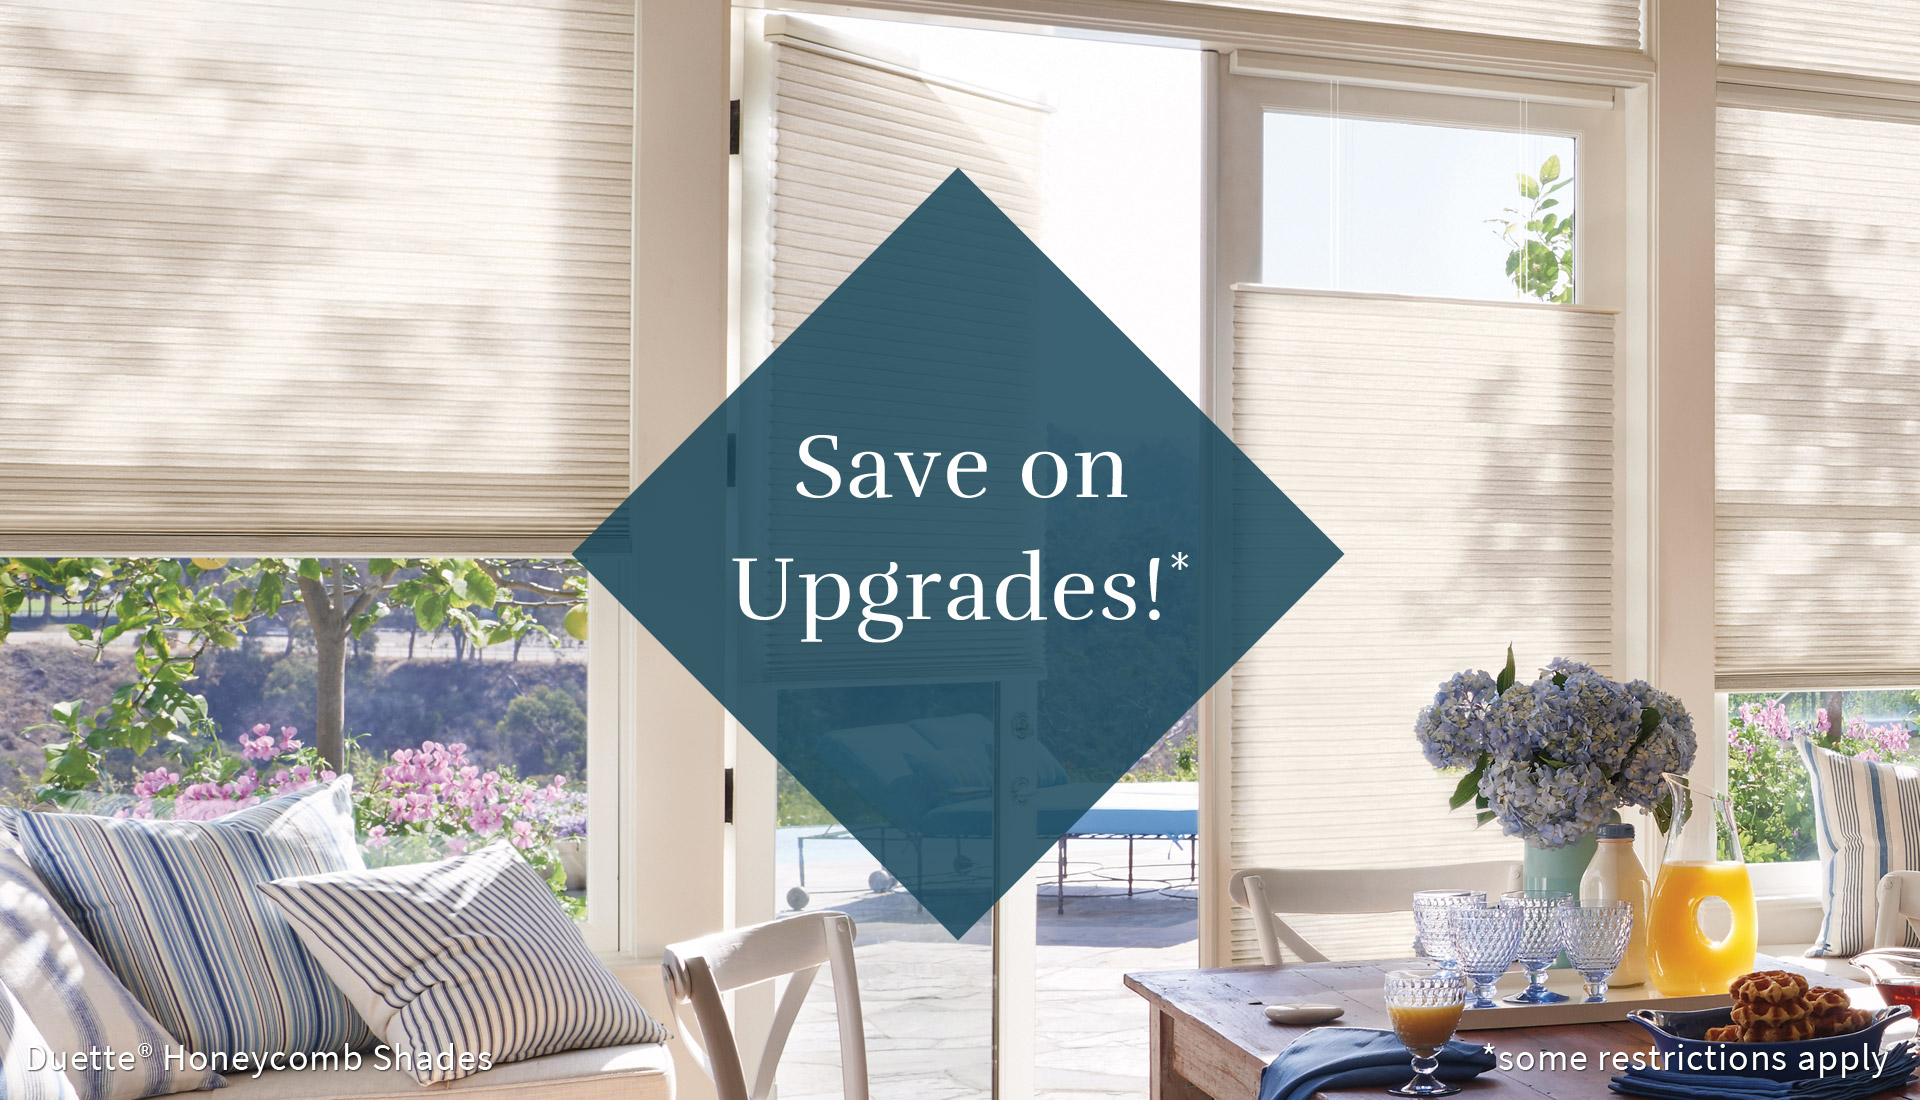 free upgrades Hunter Douglas window treatments on sale Austin 78758